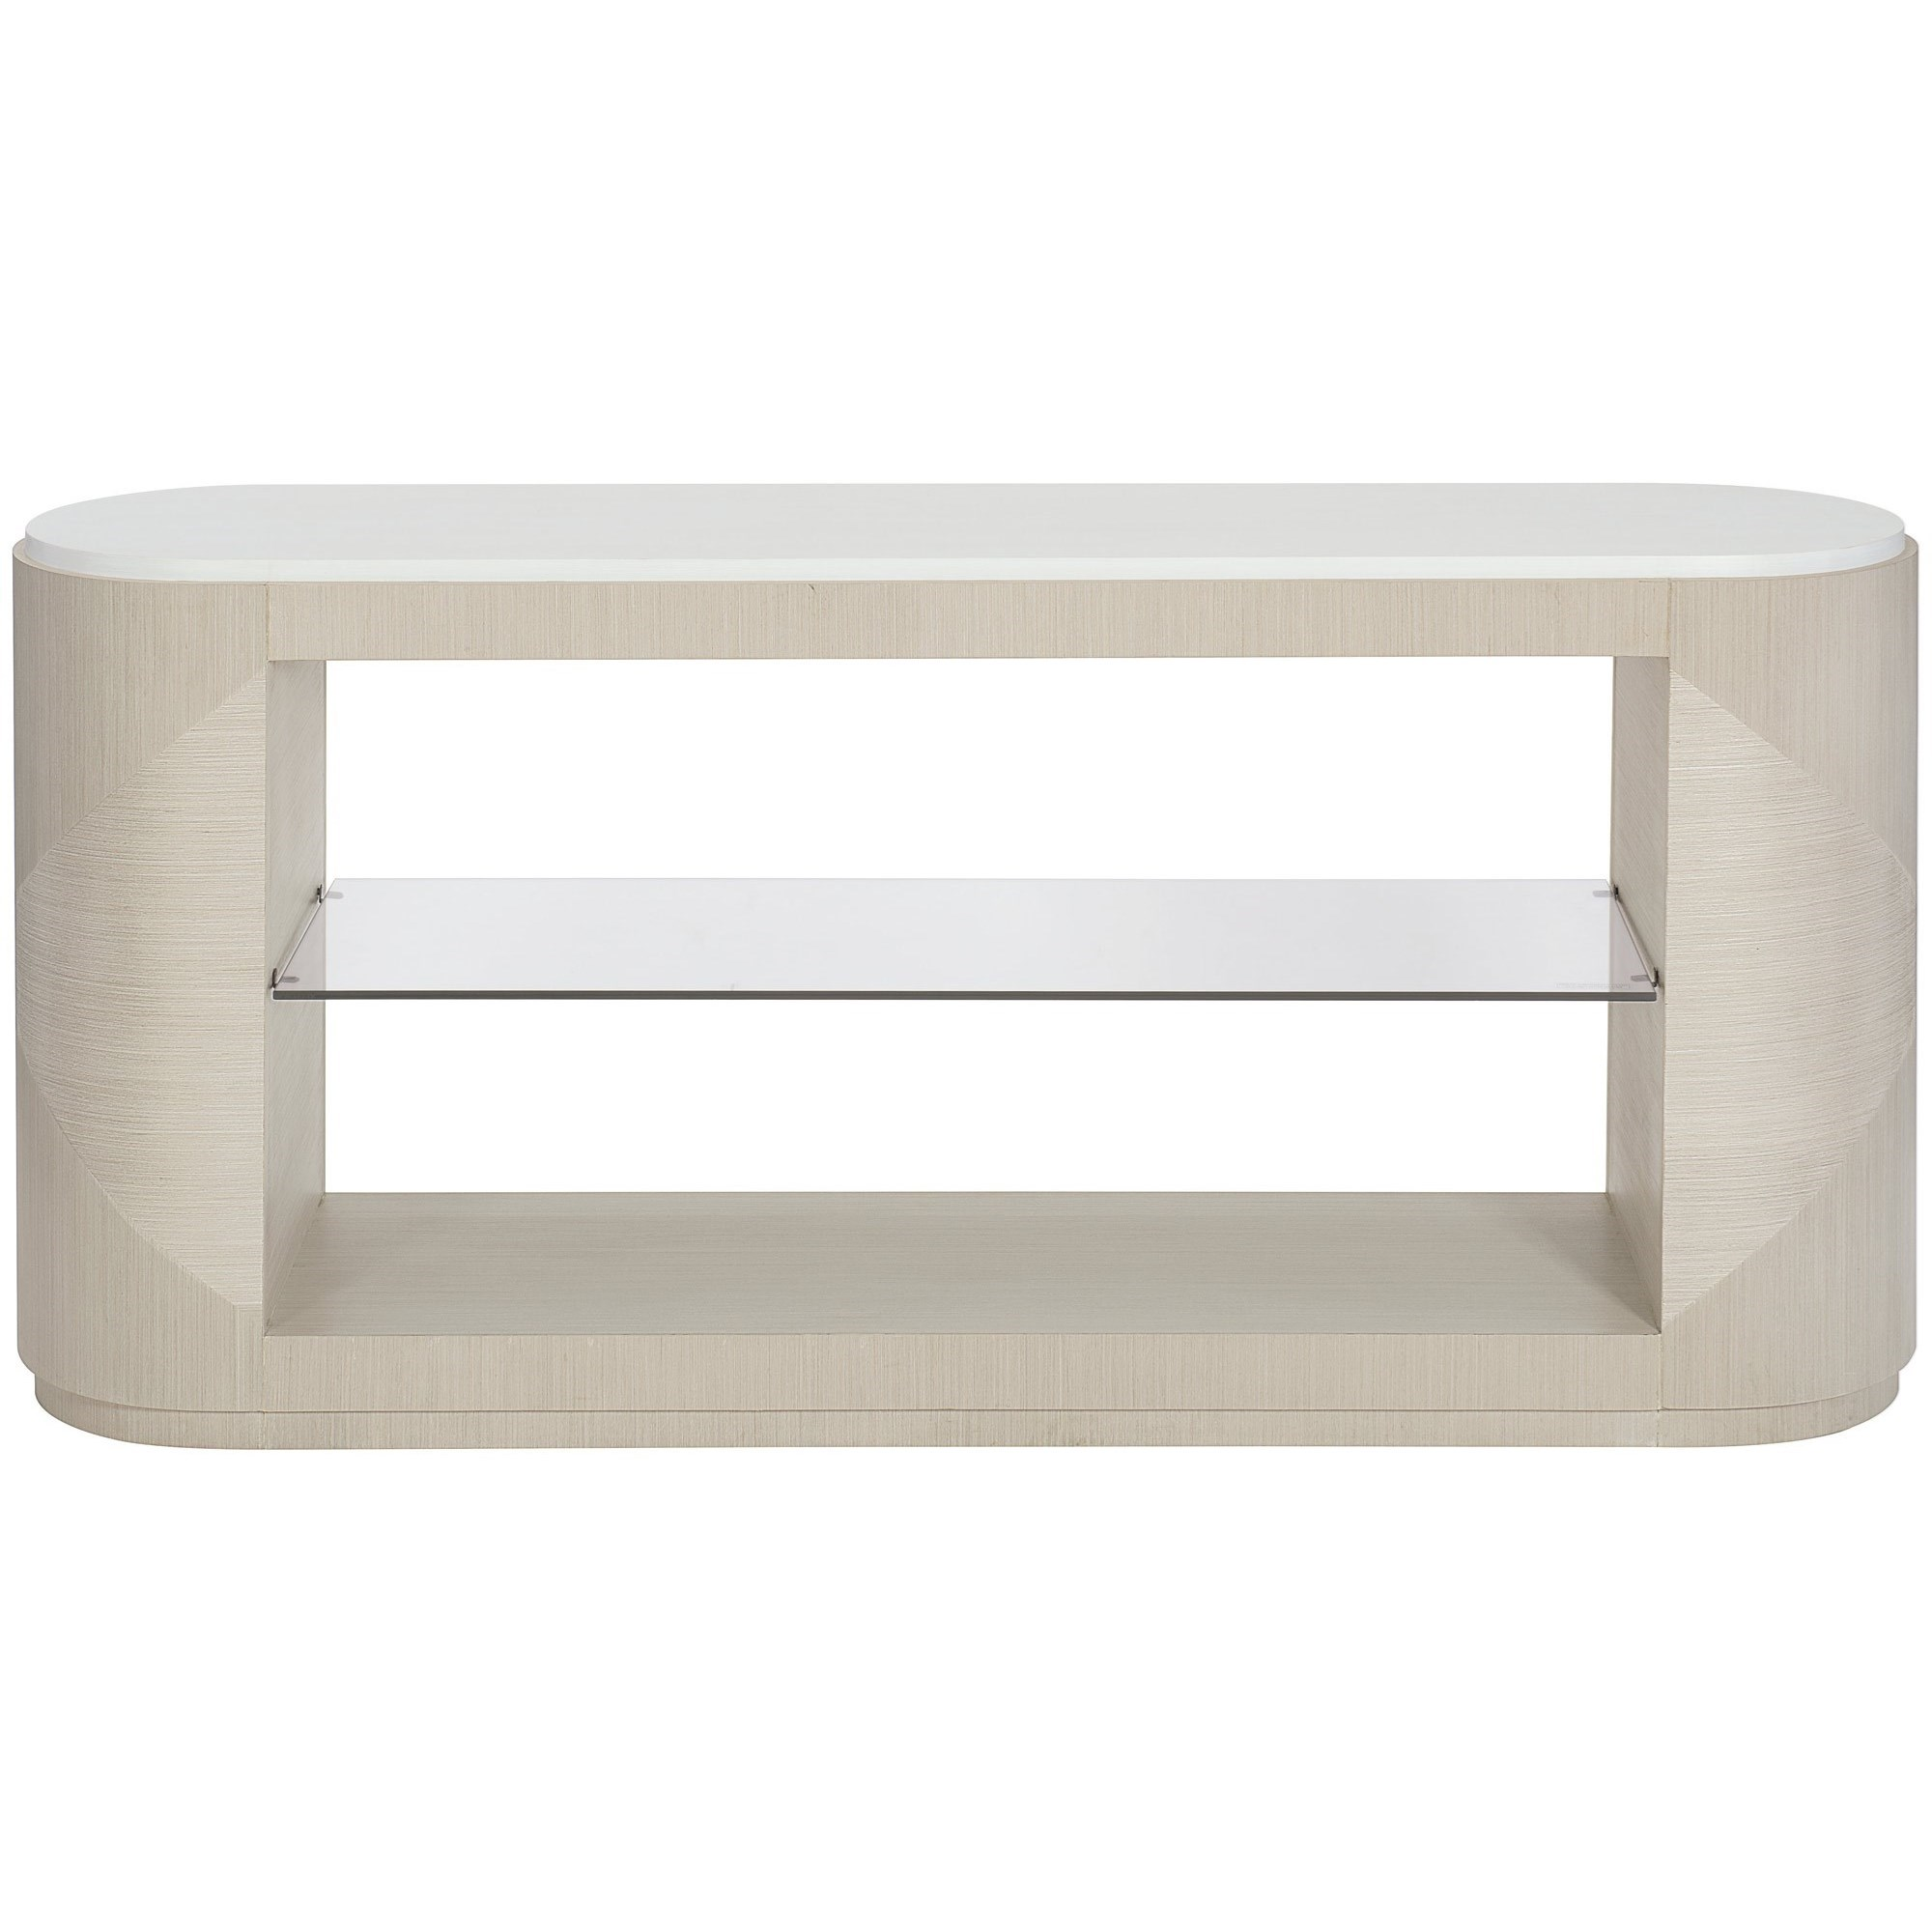 Axiom Console Table by Bernhardt at Baer's Furniture